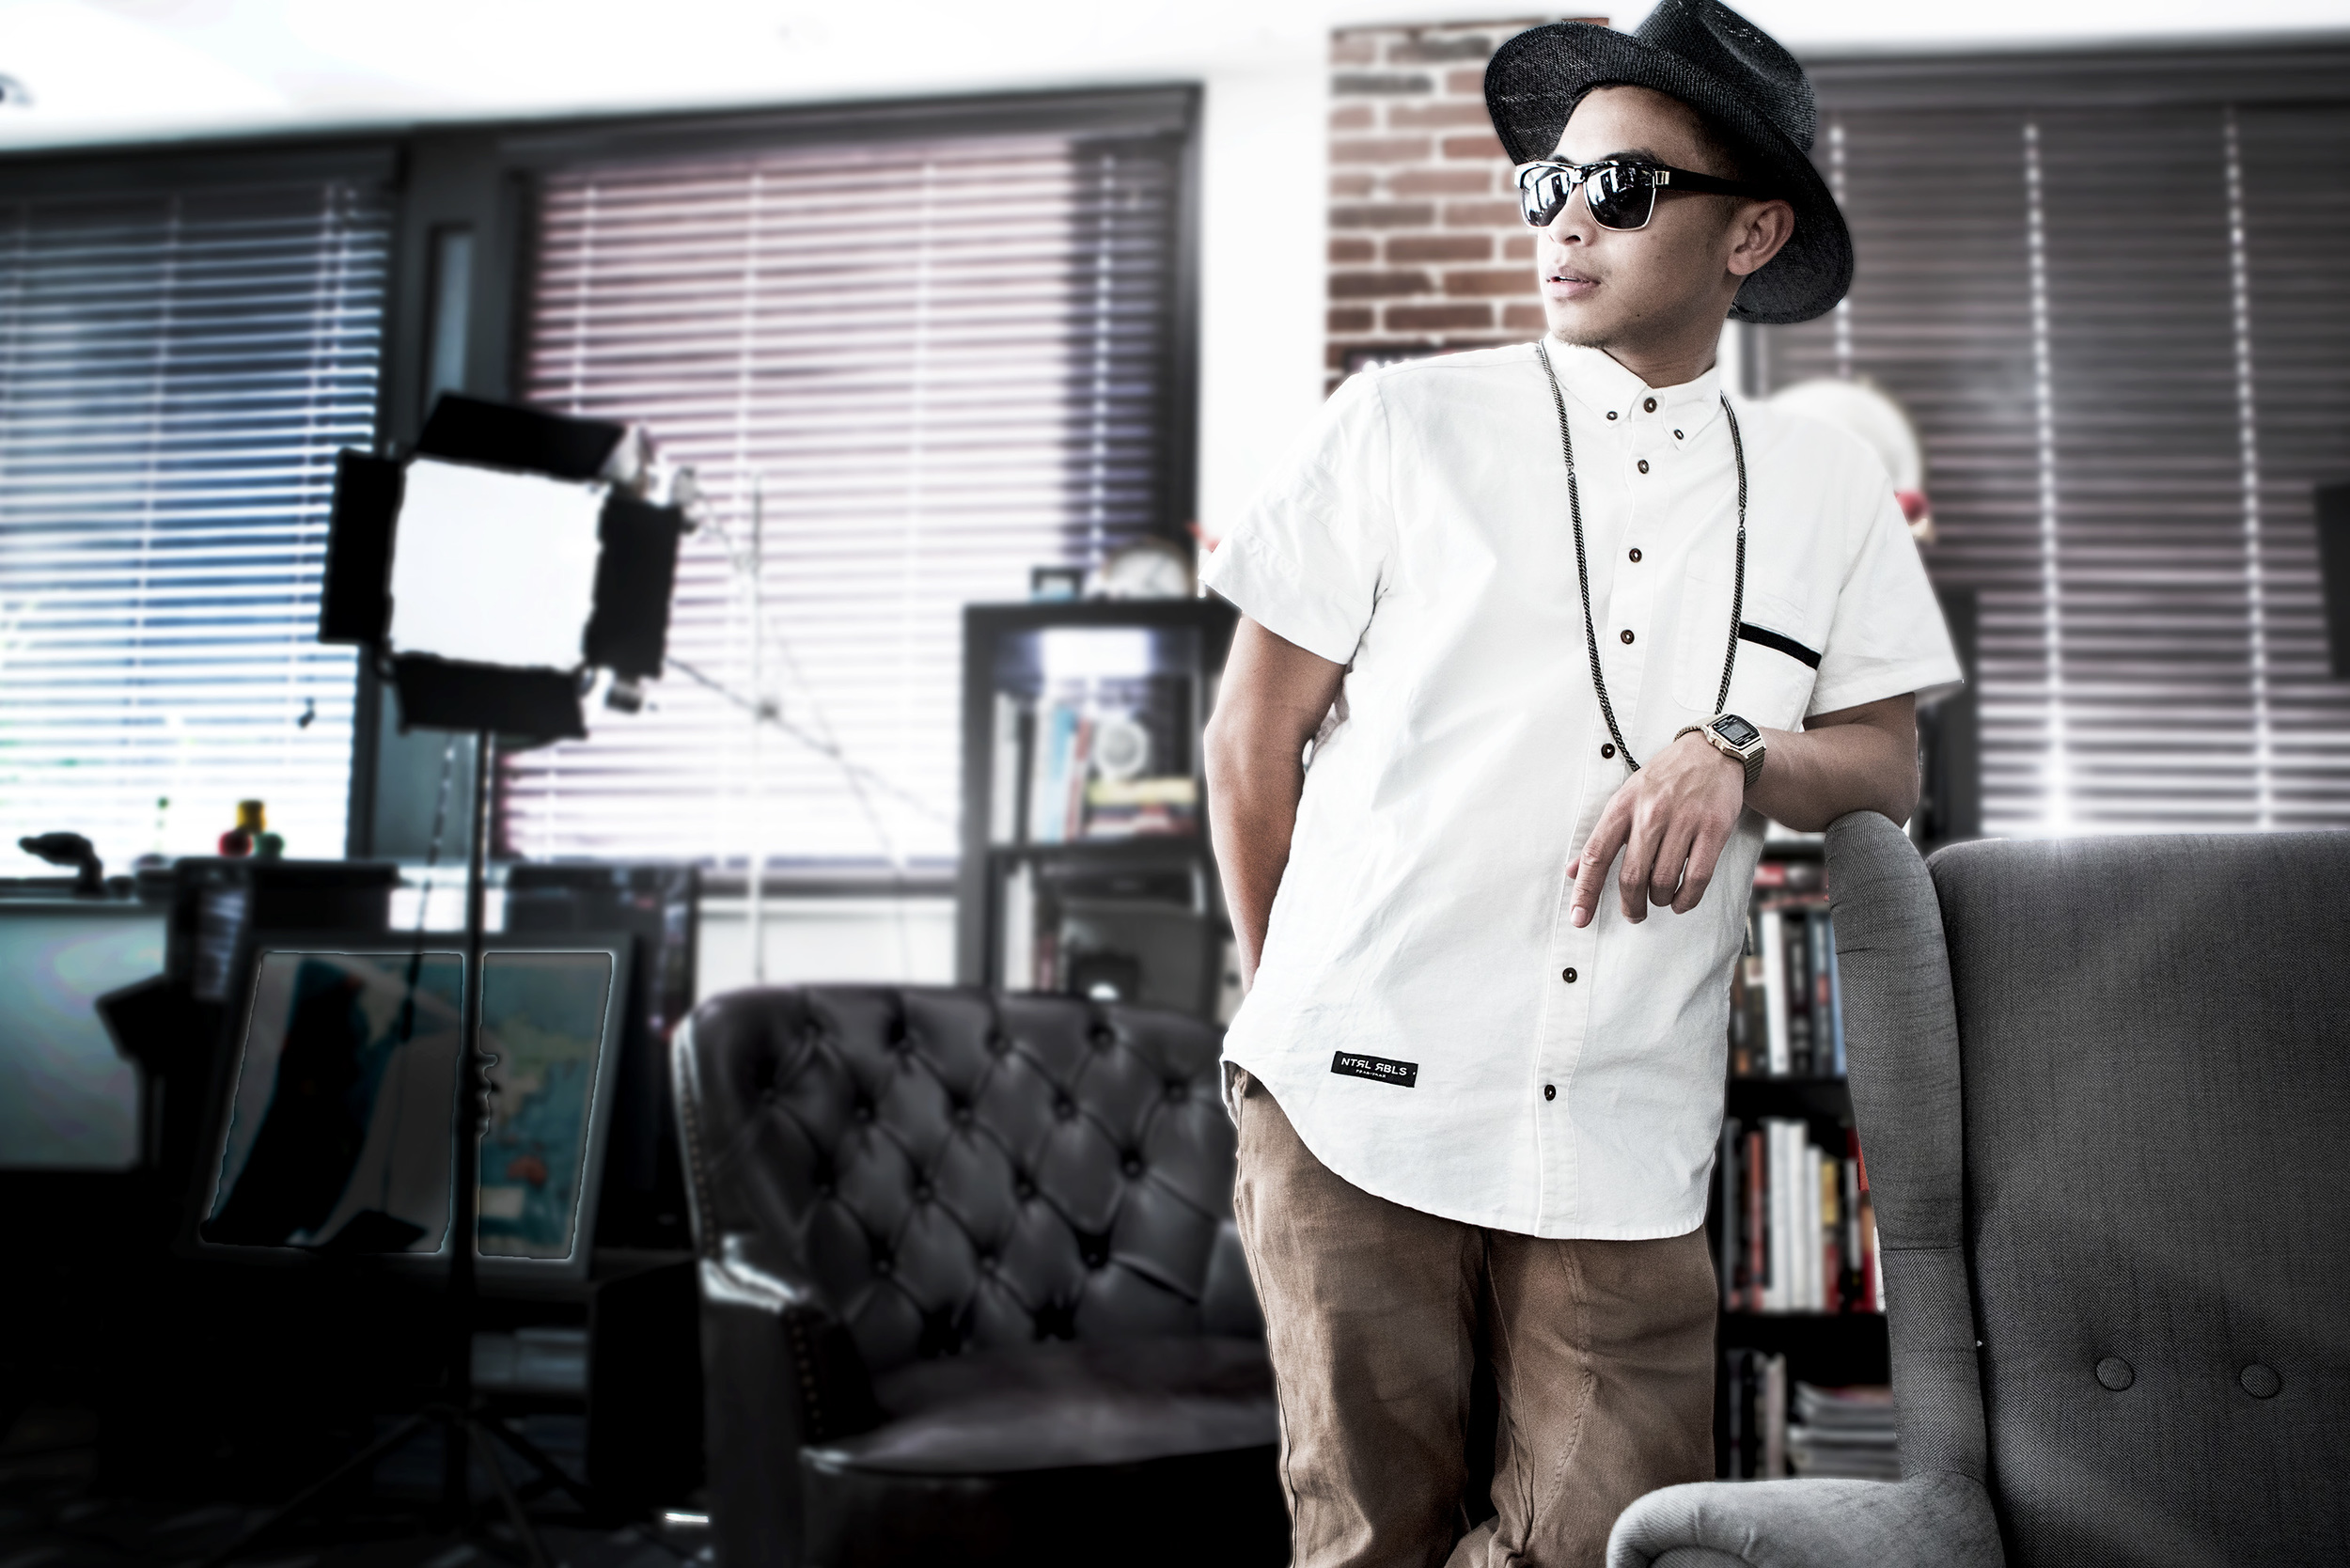 JUSTFENG JFOOTD JUSTFENGPHOTO CHAD POREOTICS PSY DADDY  EDITORIAL FASHION OOTDMENS